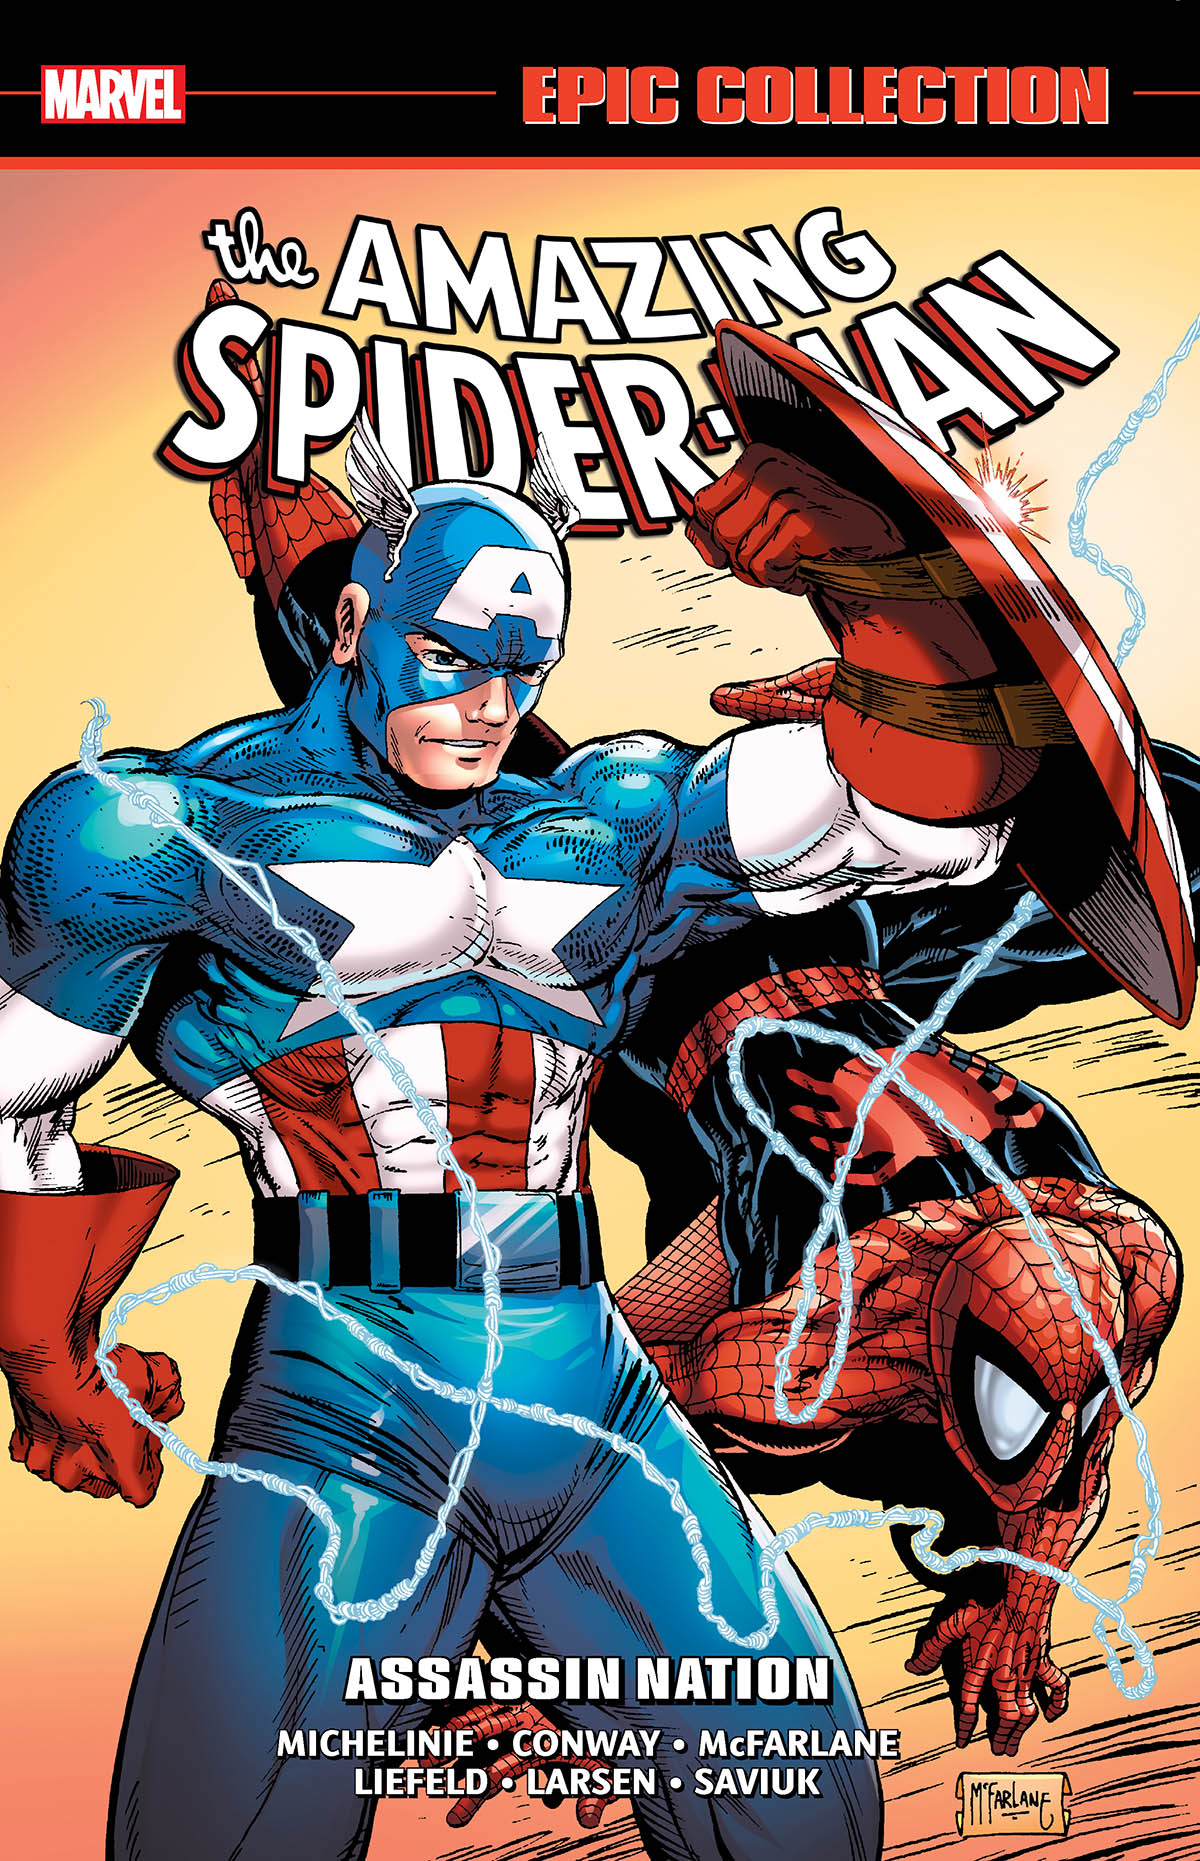 Amazing Spider-Man Epic Collection: Assassin Nation (Trade Paperback)